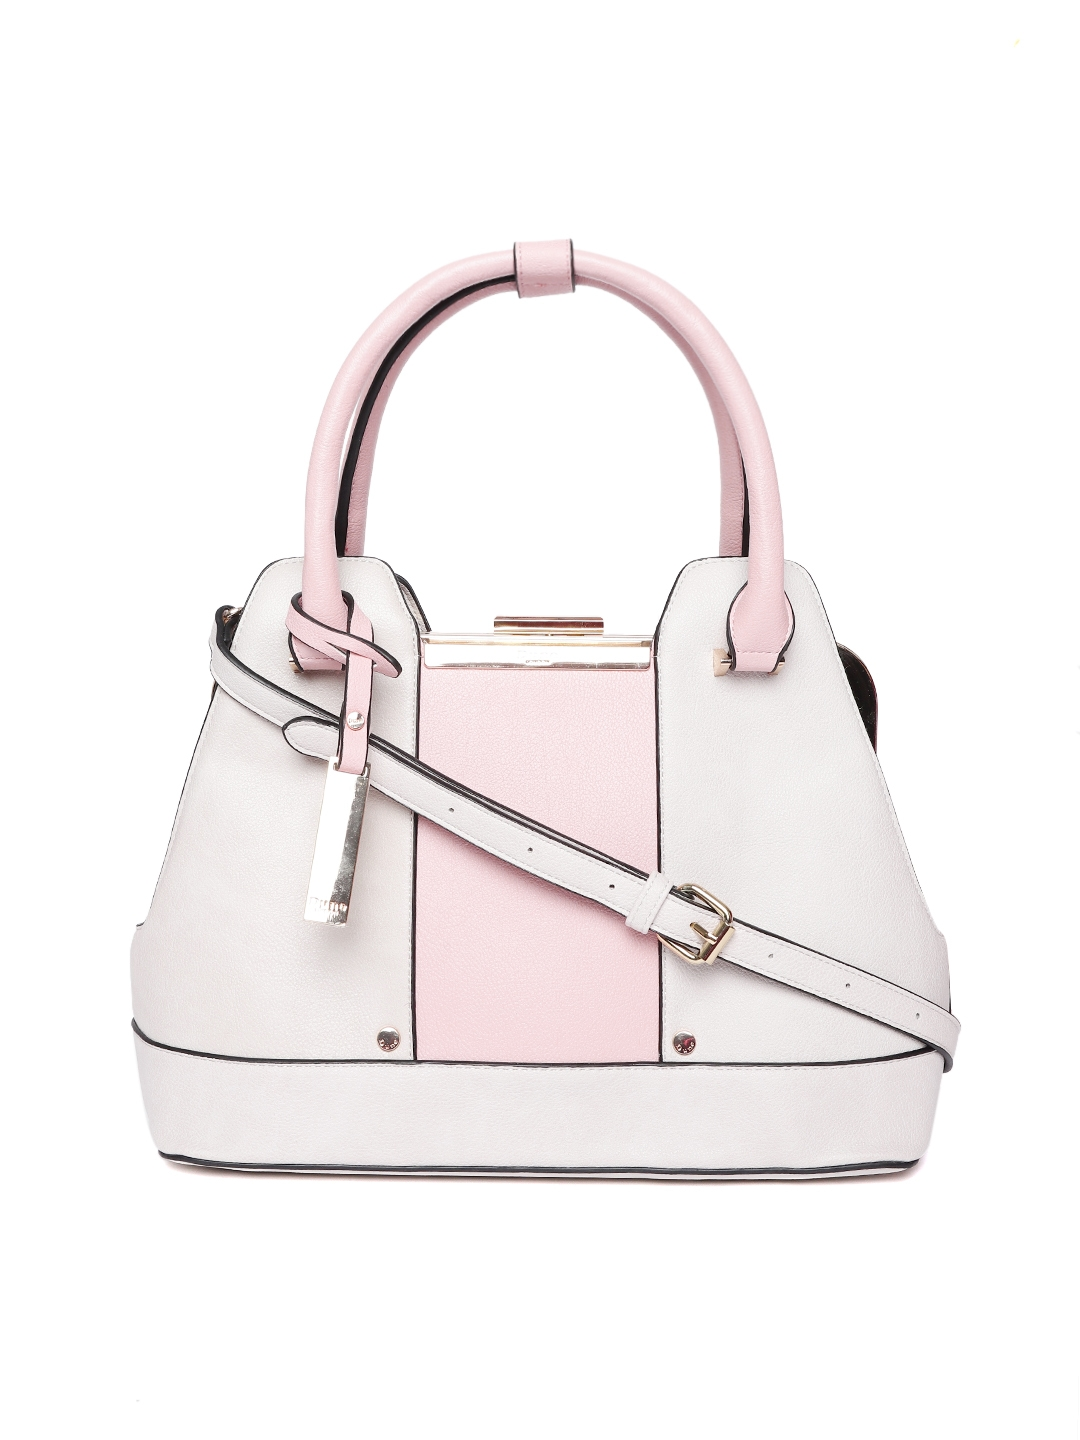 Dune London Off White Pink Colourblocked Handheld Bag